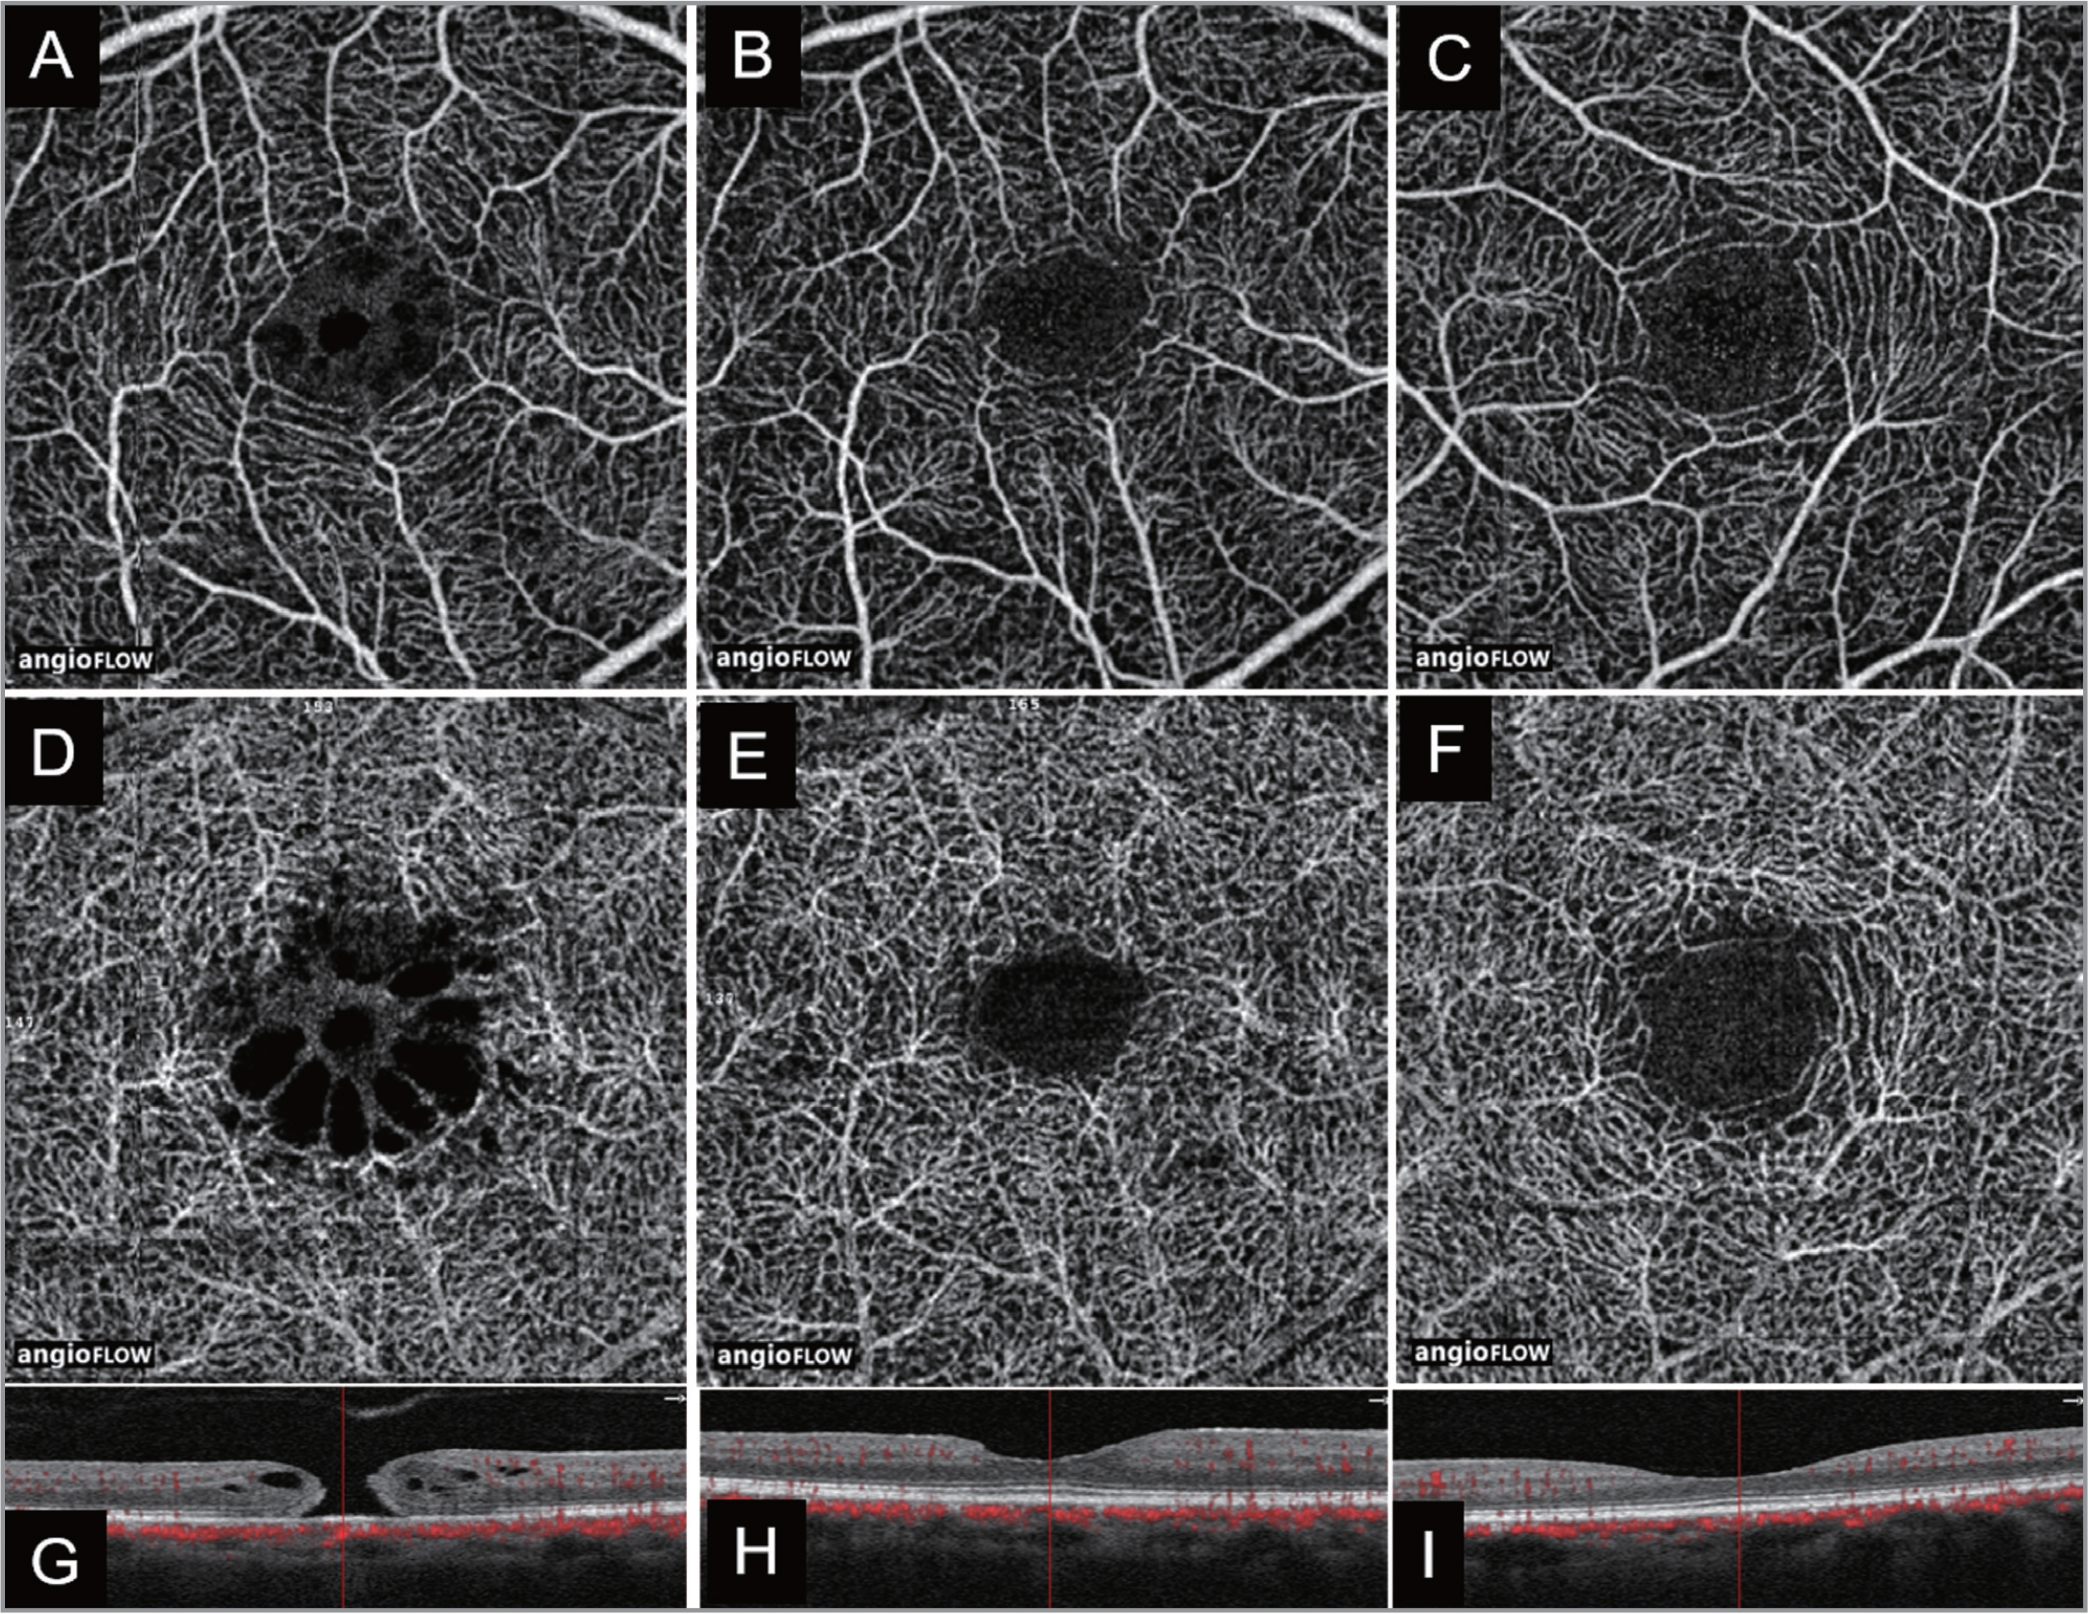 3 mm × 3 mm optical coherence tomography angiography images of an eye with macular hole having a cystic pattern, showing (A) the superficial layer before surgery, (B) the superficial layer 6 months after surgery, (C) the superficial layer in the fellow eye, (D) the deep layer before surgery with the appearance of a cystic structure, (E) the deep layer after surgery (the cyst structure has diminished and the foveal avascular zone is smaller), and (F) the deep layer of the fellow eye. G-I are tomographic images of each eye in A and D, B and E, and C and F, respectively.